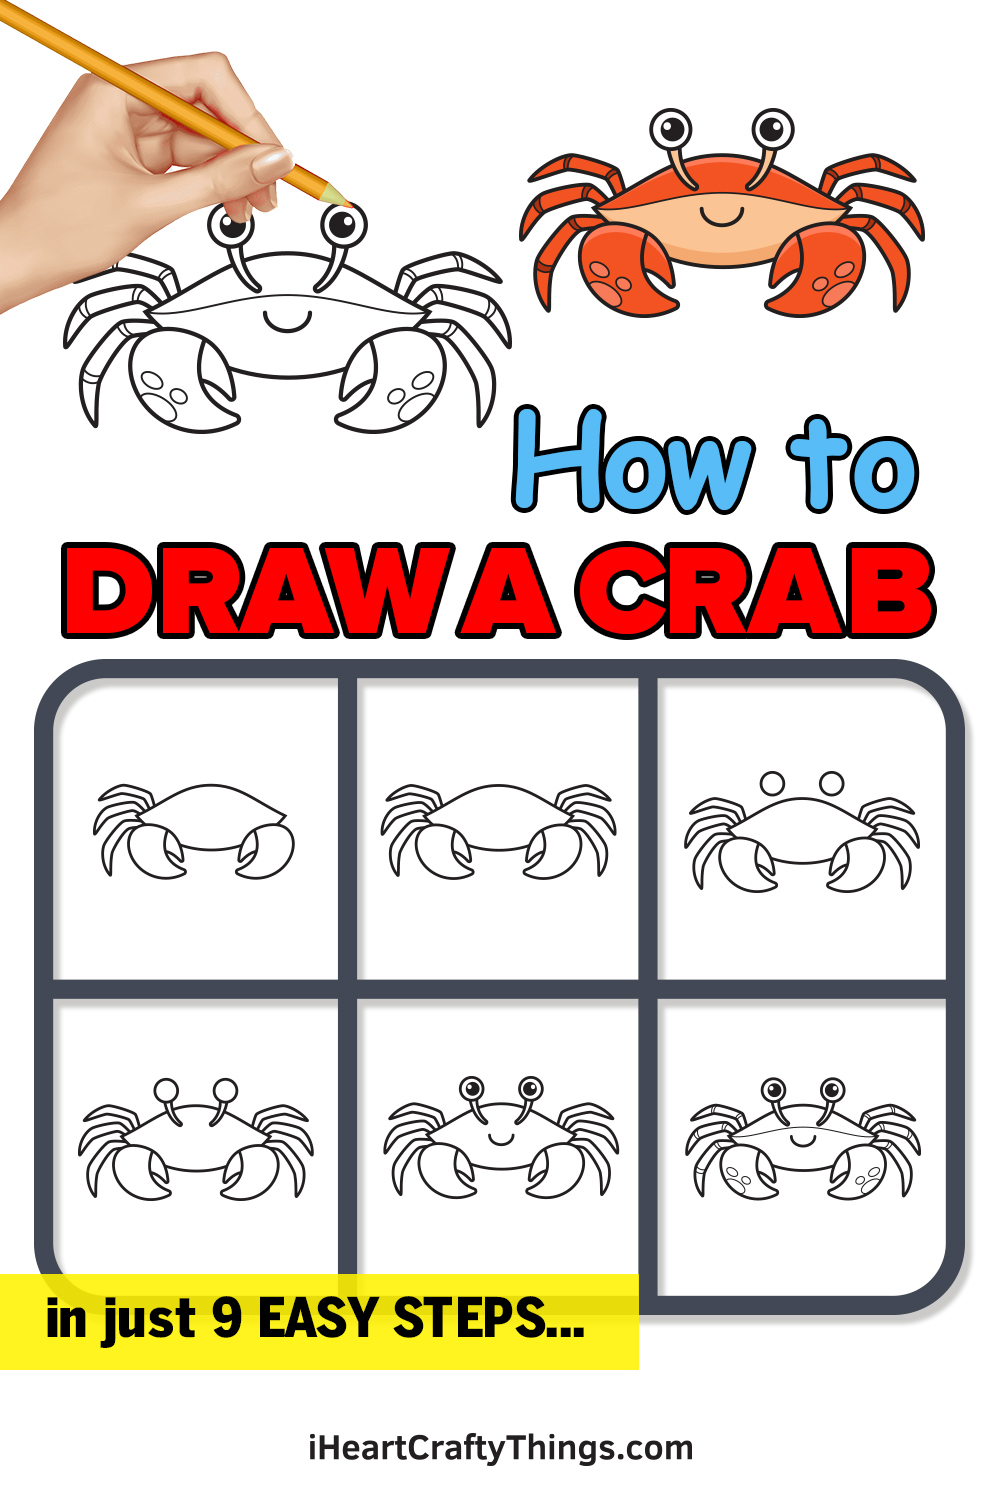 How to Draw a Crab in 9 Easy Steps